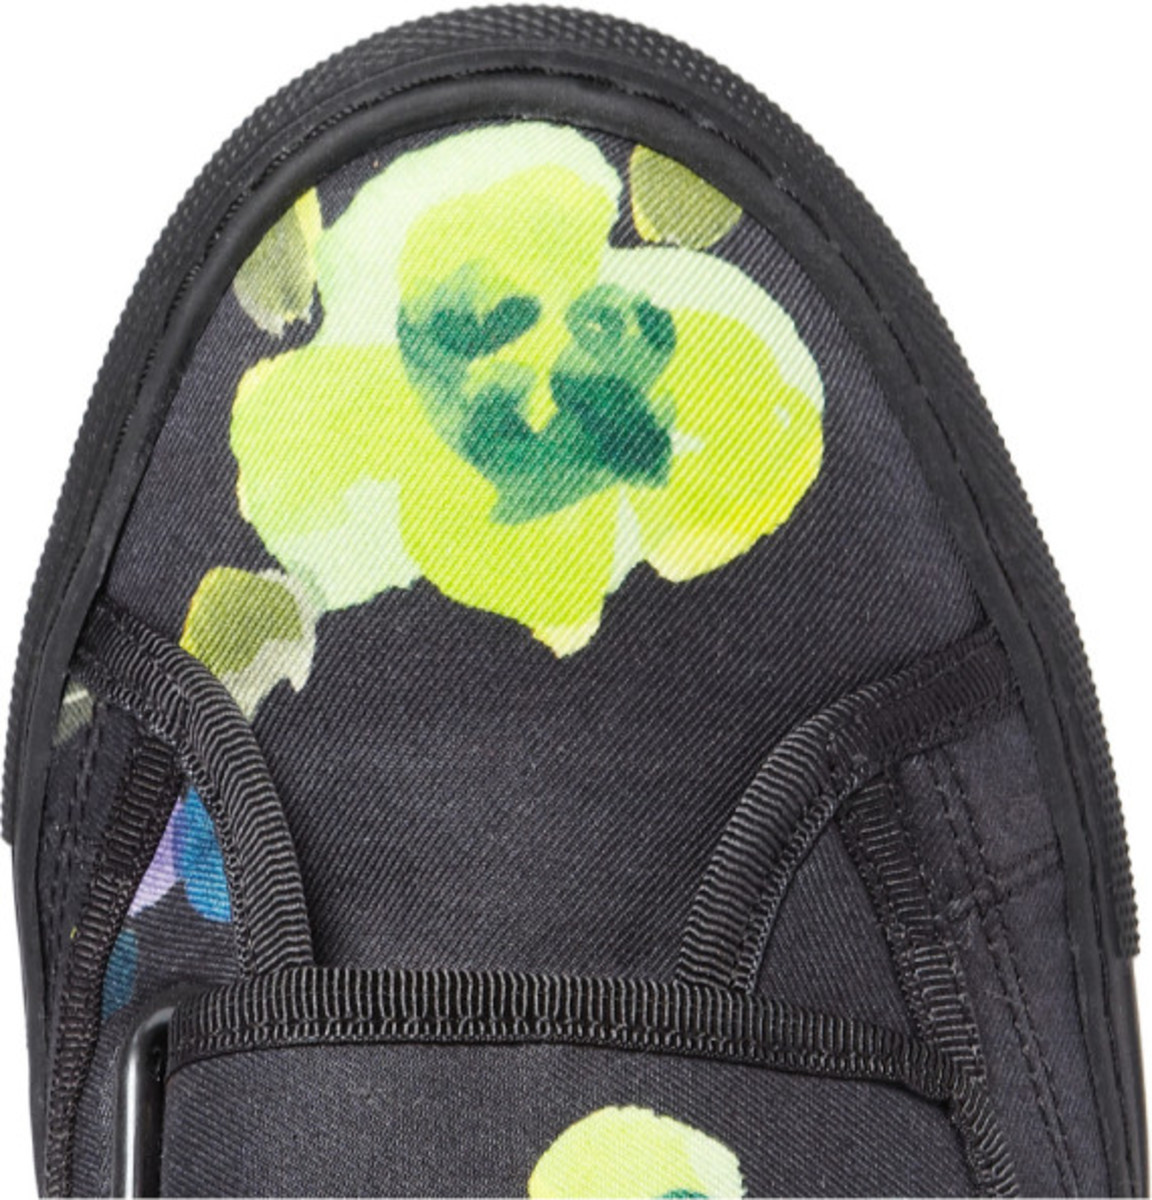 raf-simons-mr-porter-exclusive-flower-print-high-top-sneakers-04